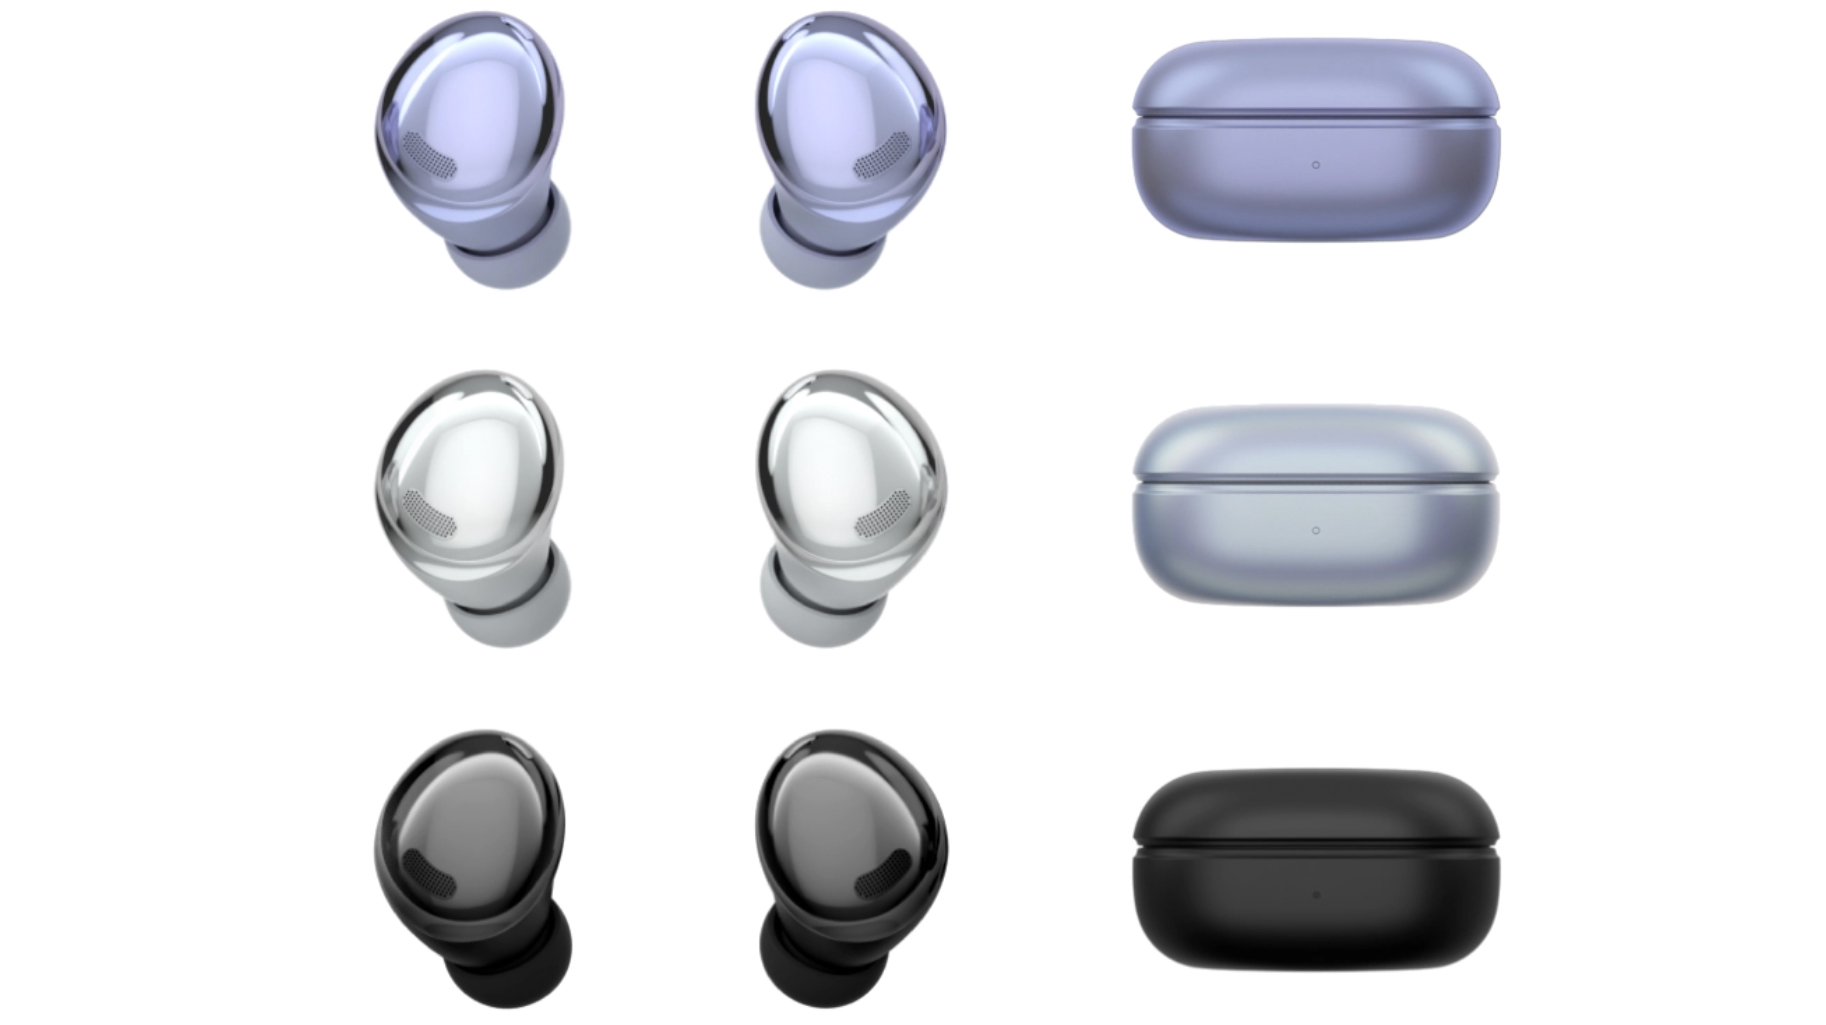 Samsung's Galaxy Buds Pro rumoured to feature Apple spatial audio-like feature